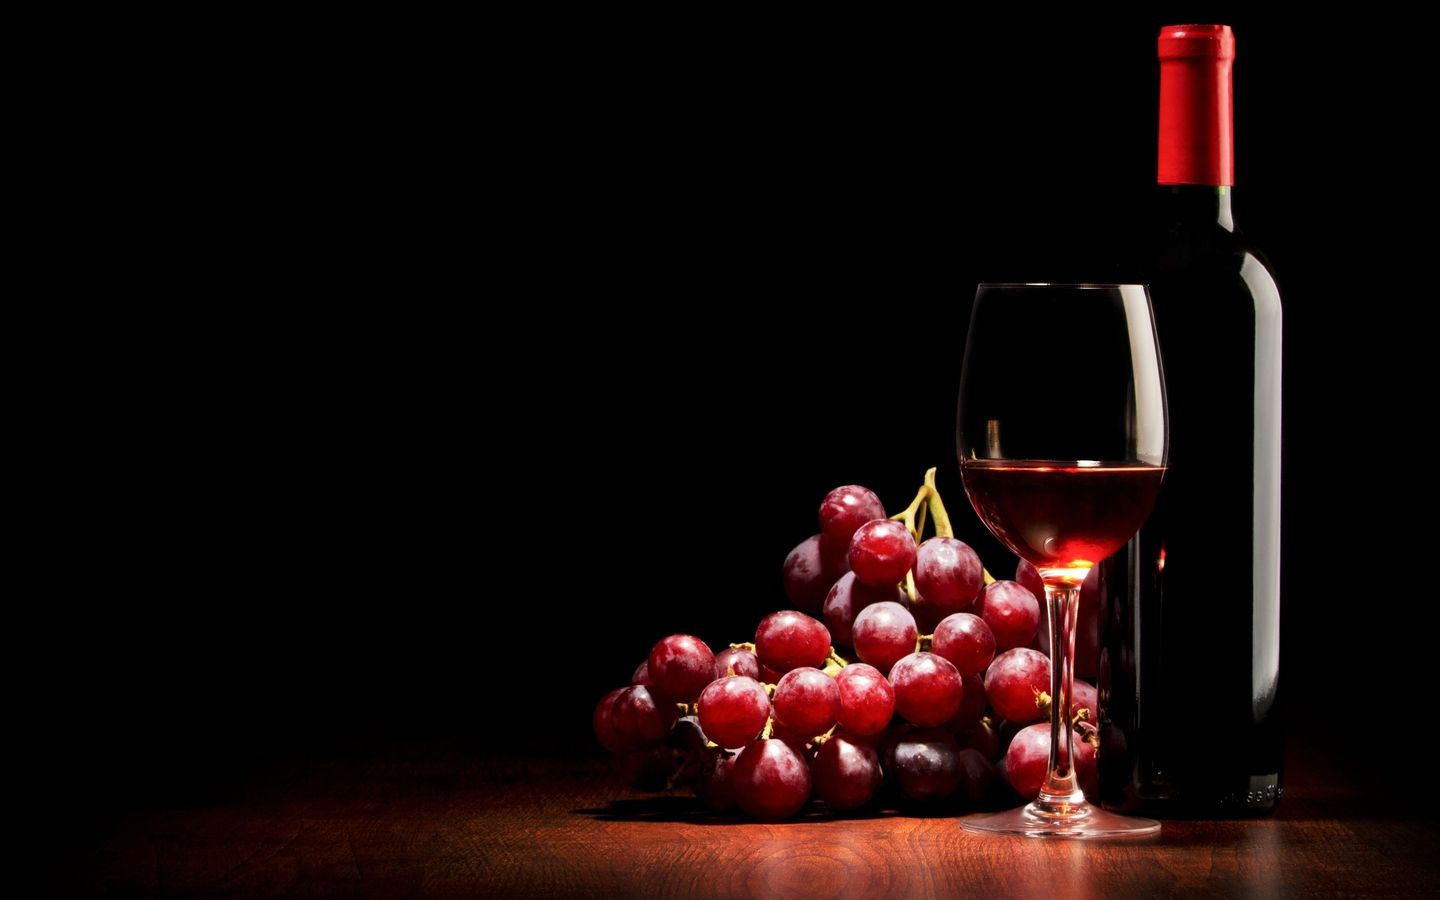 Wine Words Fruit Forward Wine Wallpaper Red Wine Red